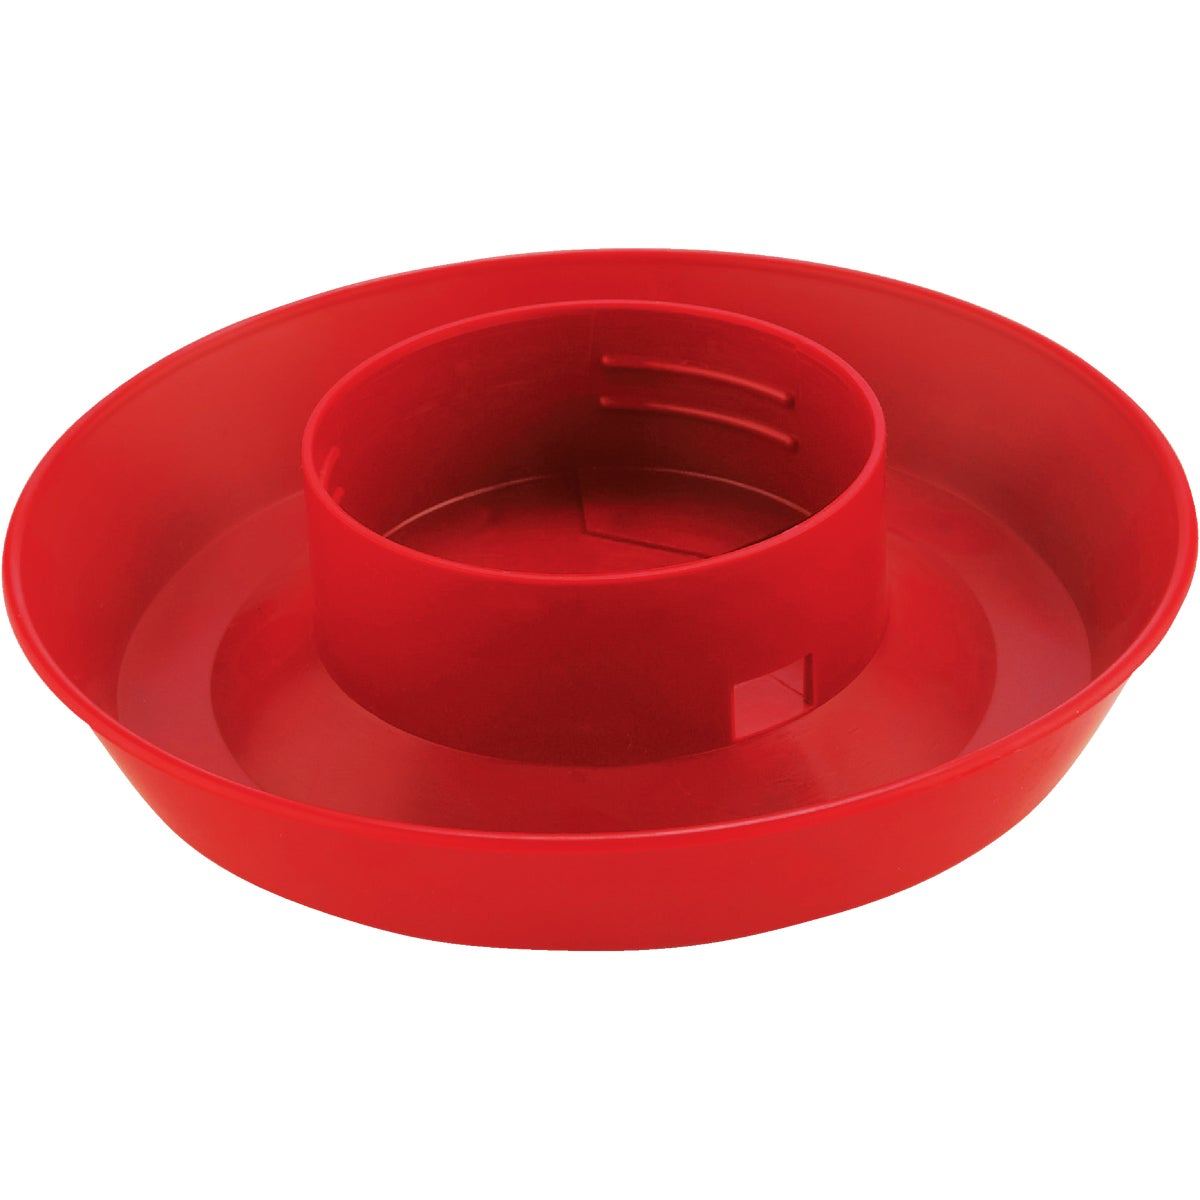 QT PLSTC FOUNTAIN BASE - 740 by Miller Manufacturing